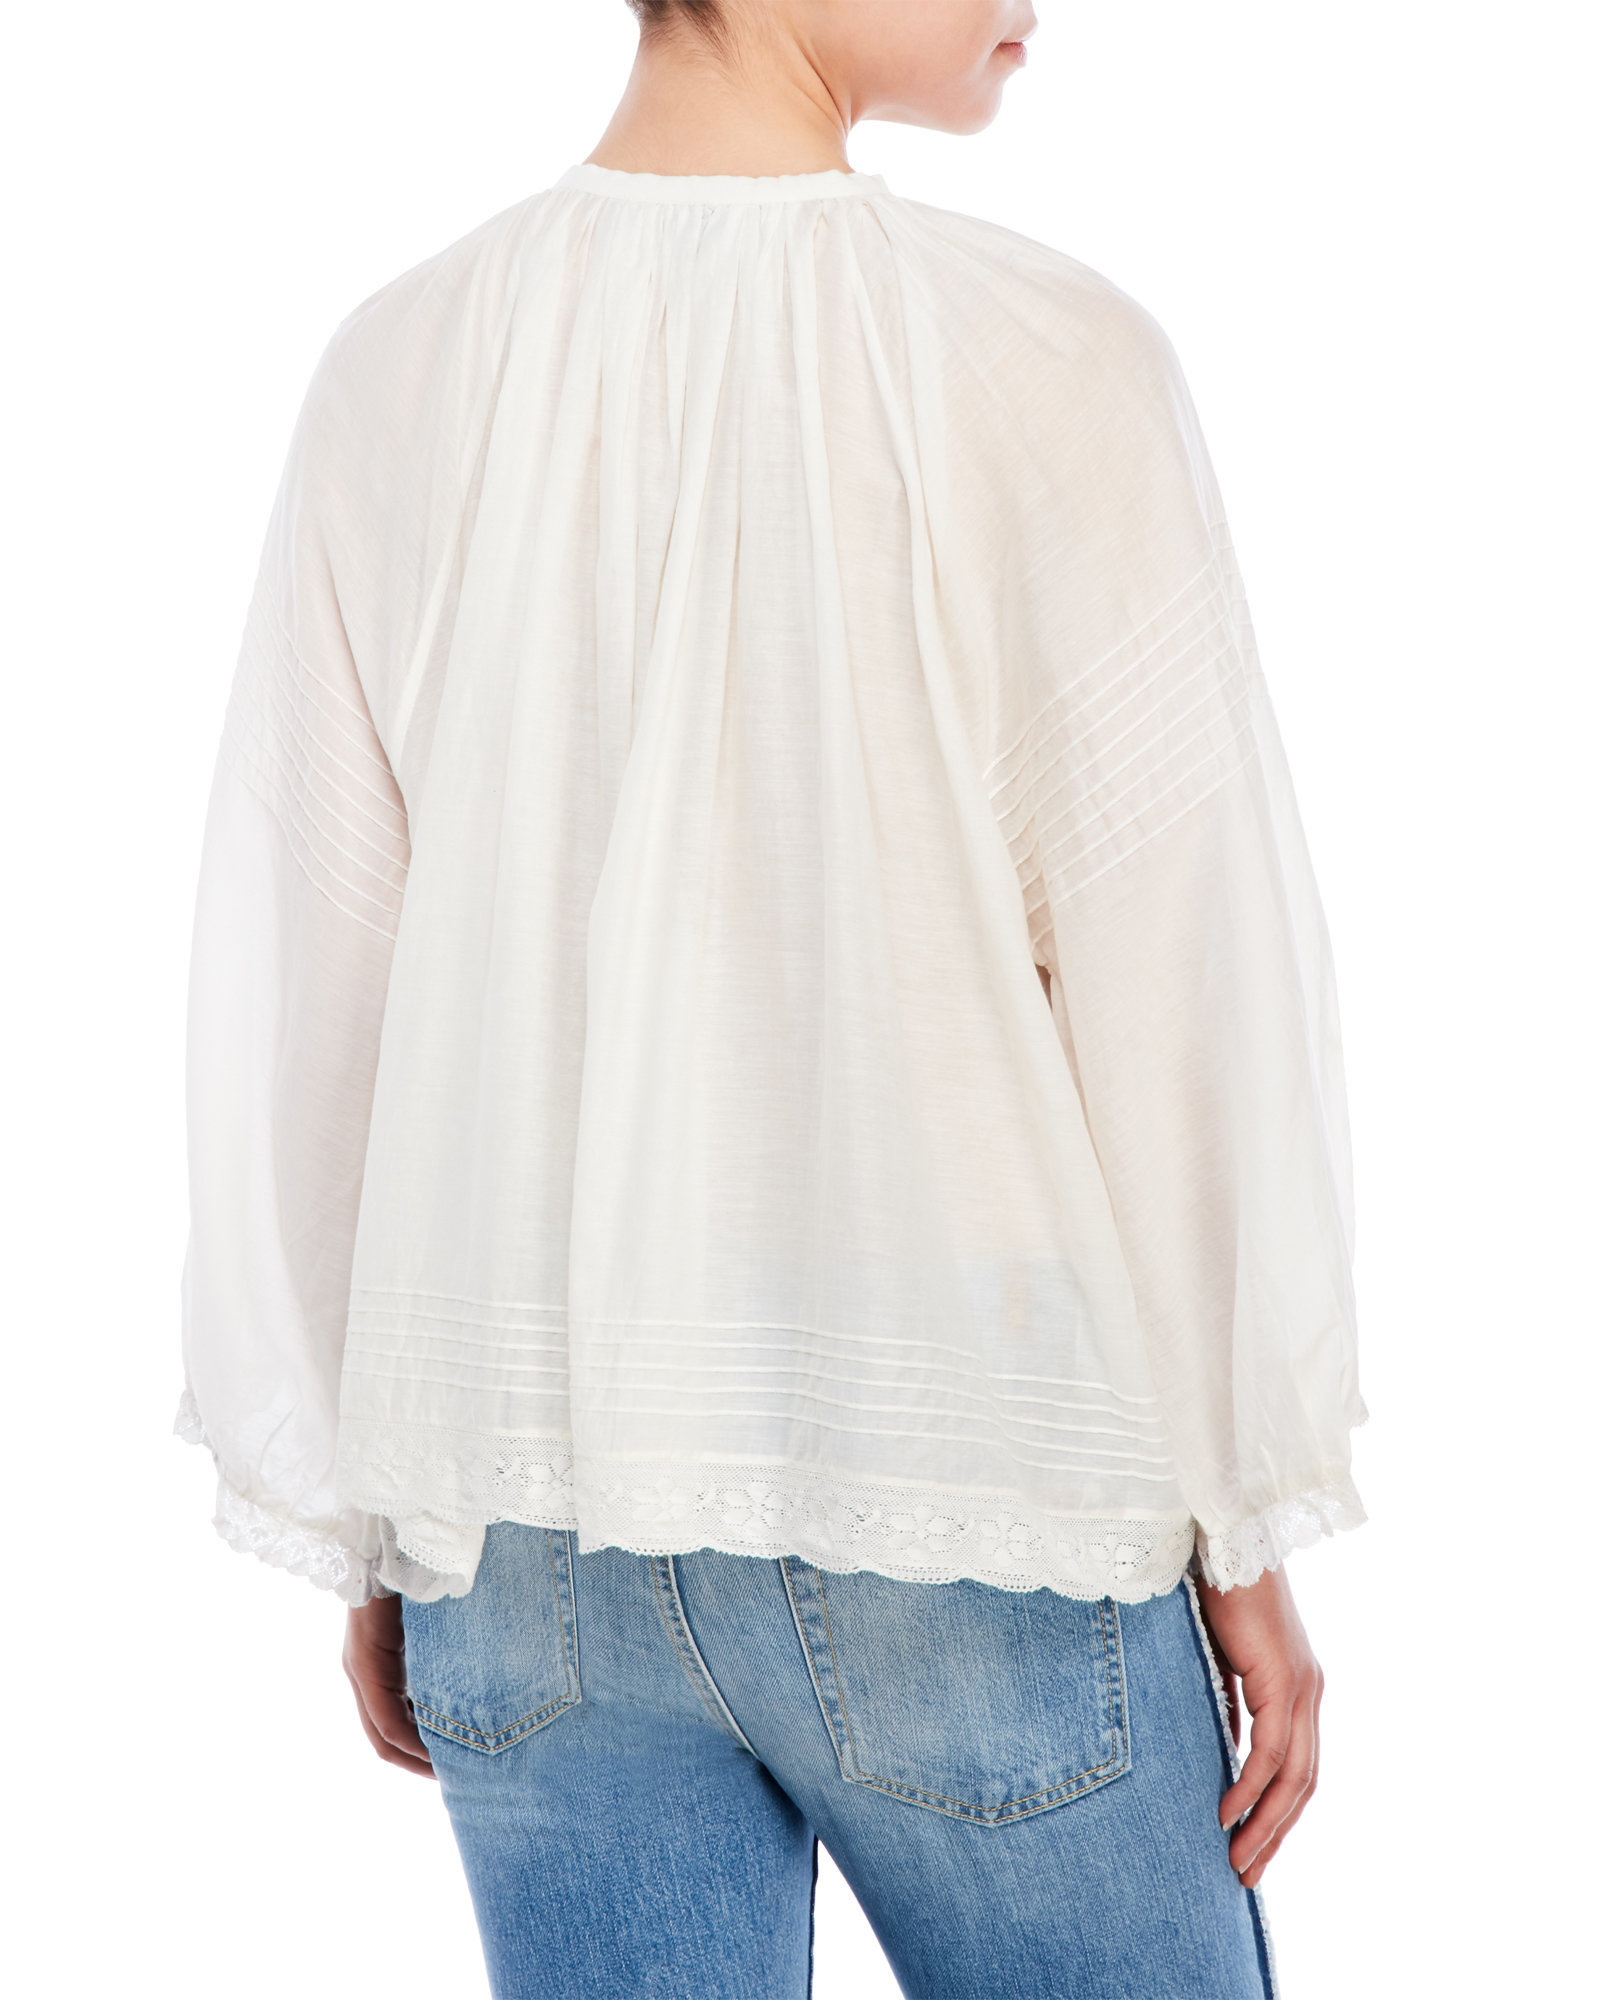 Lyst Zadig amp Voltaire Trone Deluxe Oversized Blouse in White